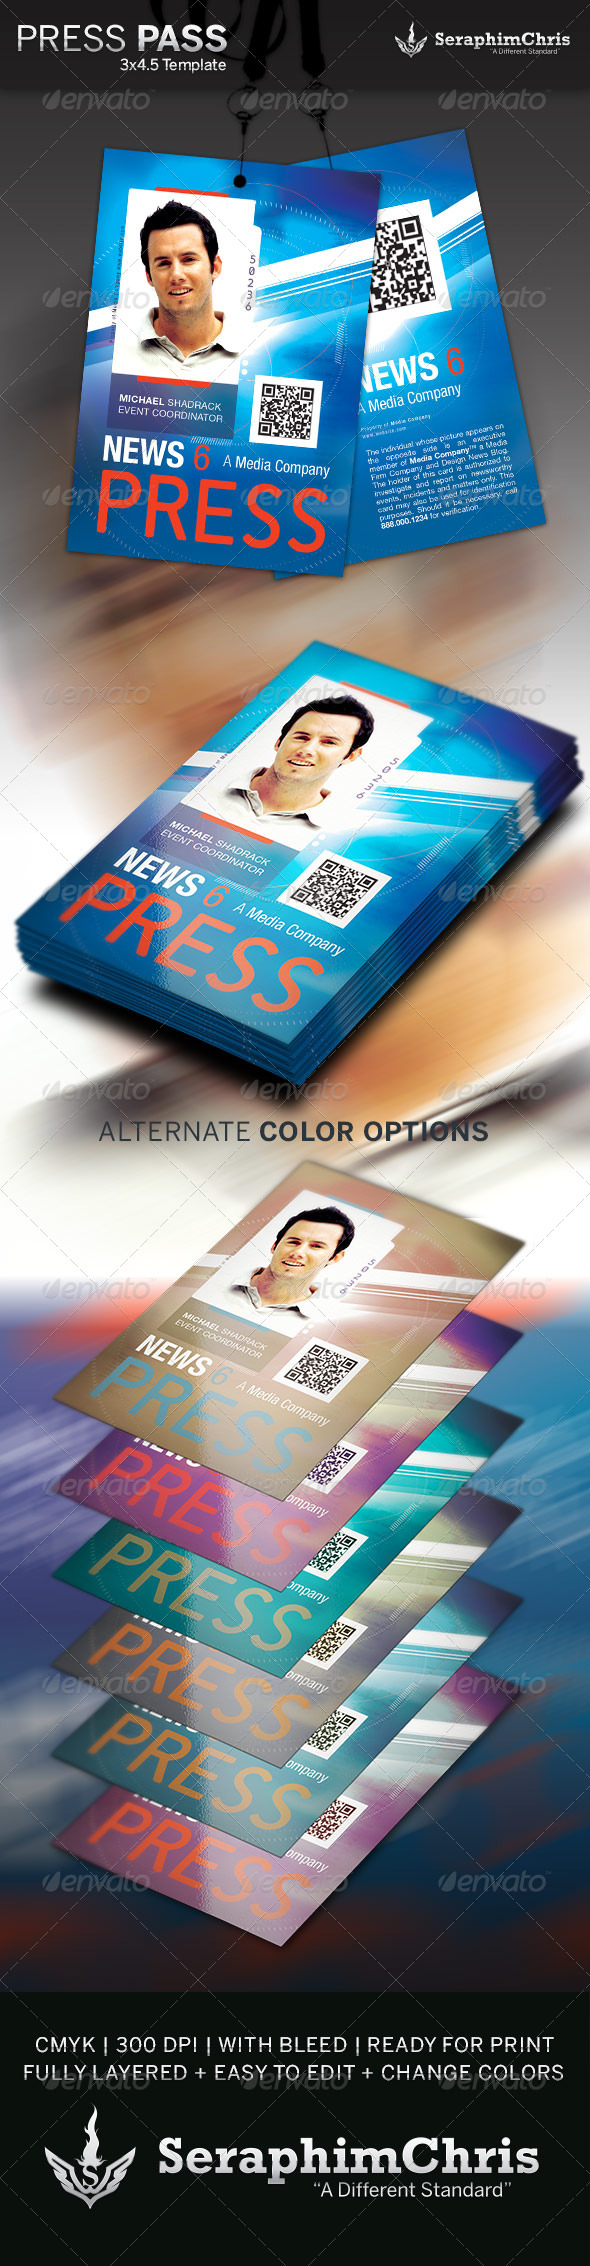 Press Pass Template 3